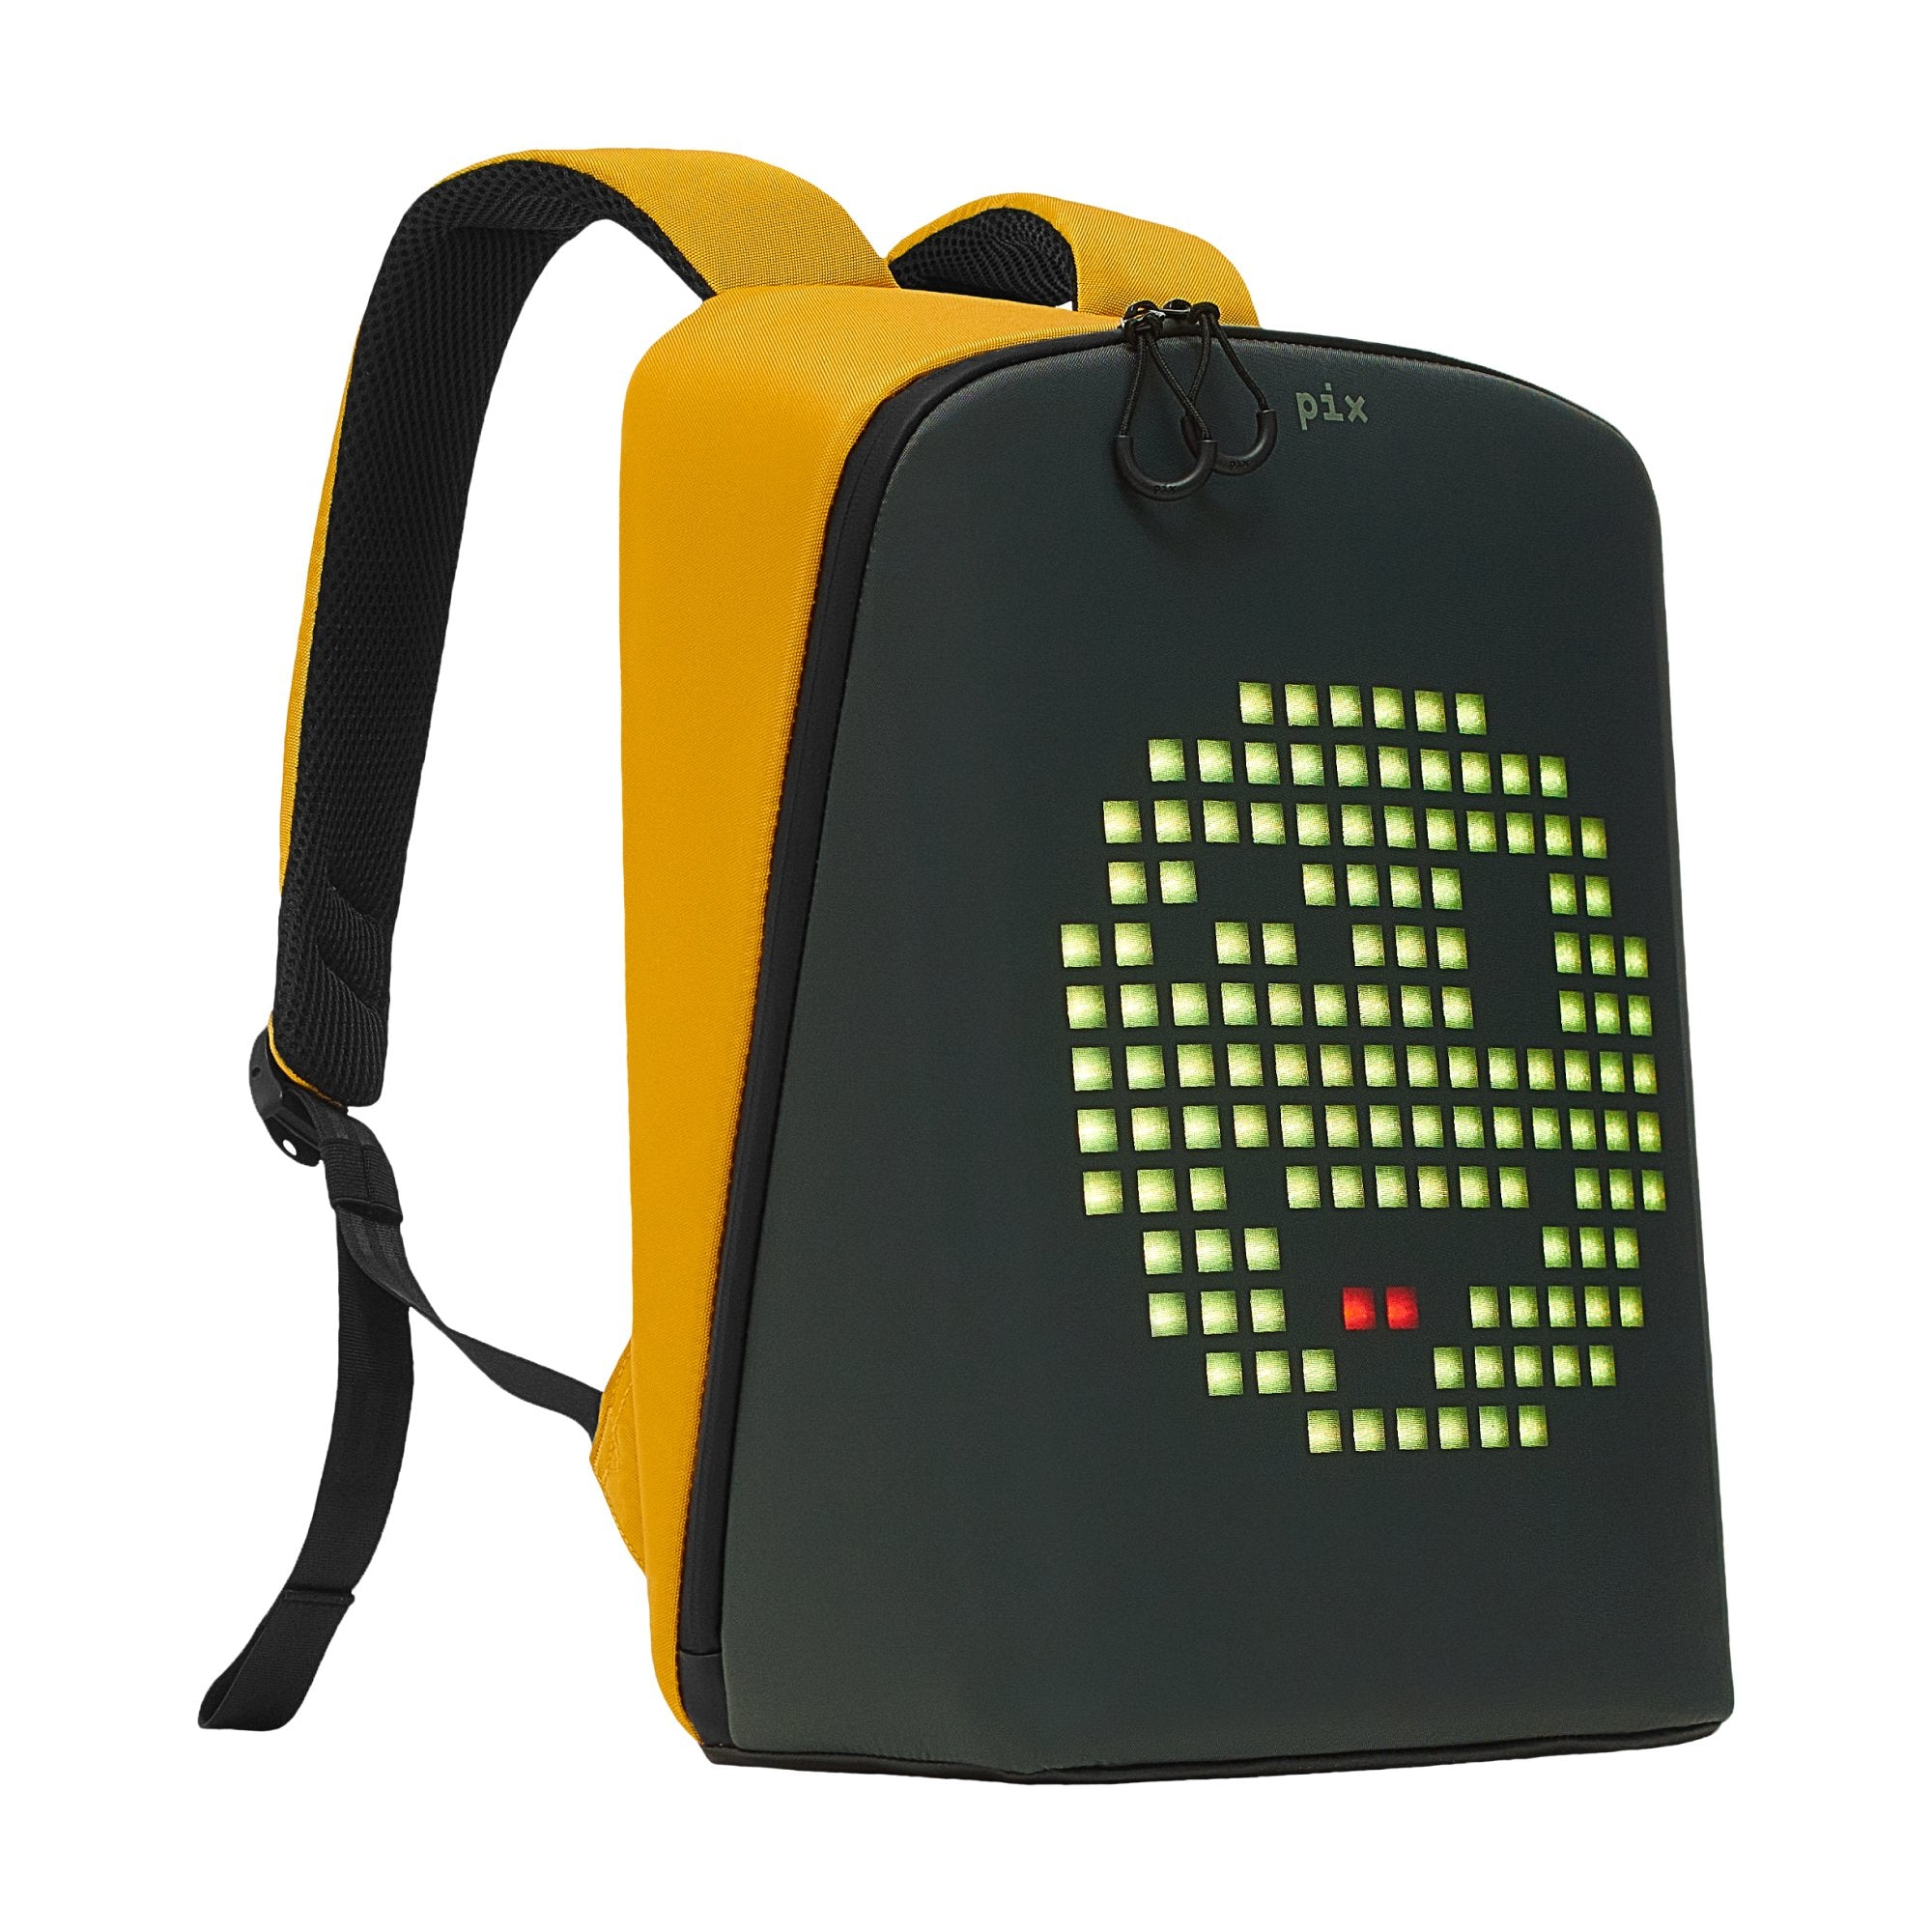 Pix Smart Backpack with Customizable LED Screen Smart Toys Pix